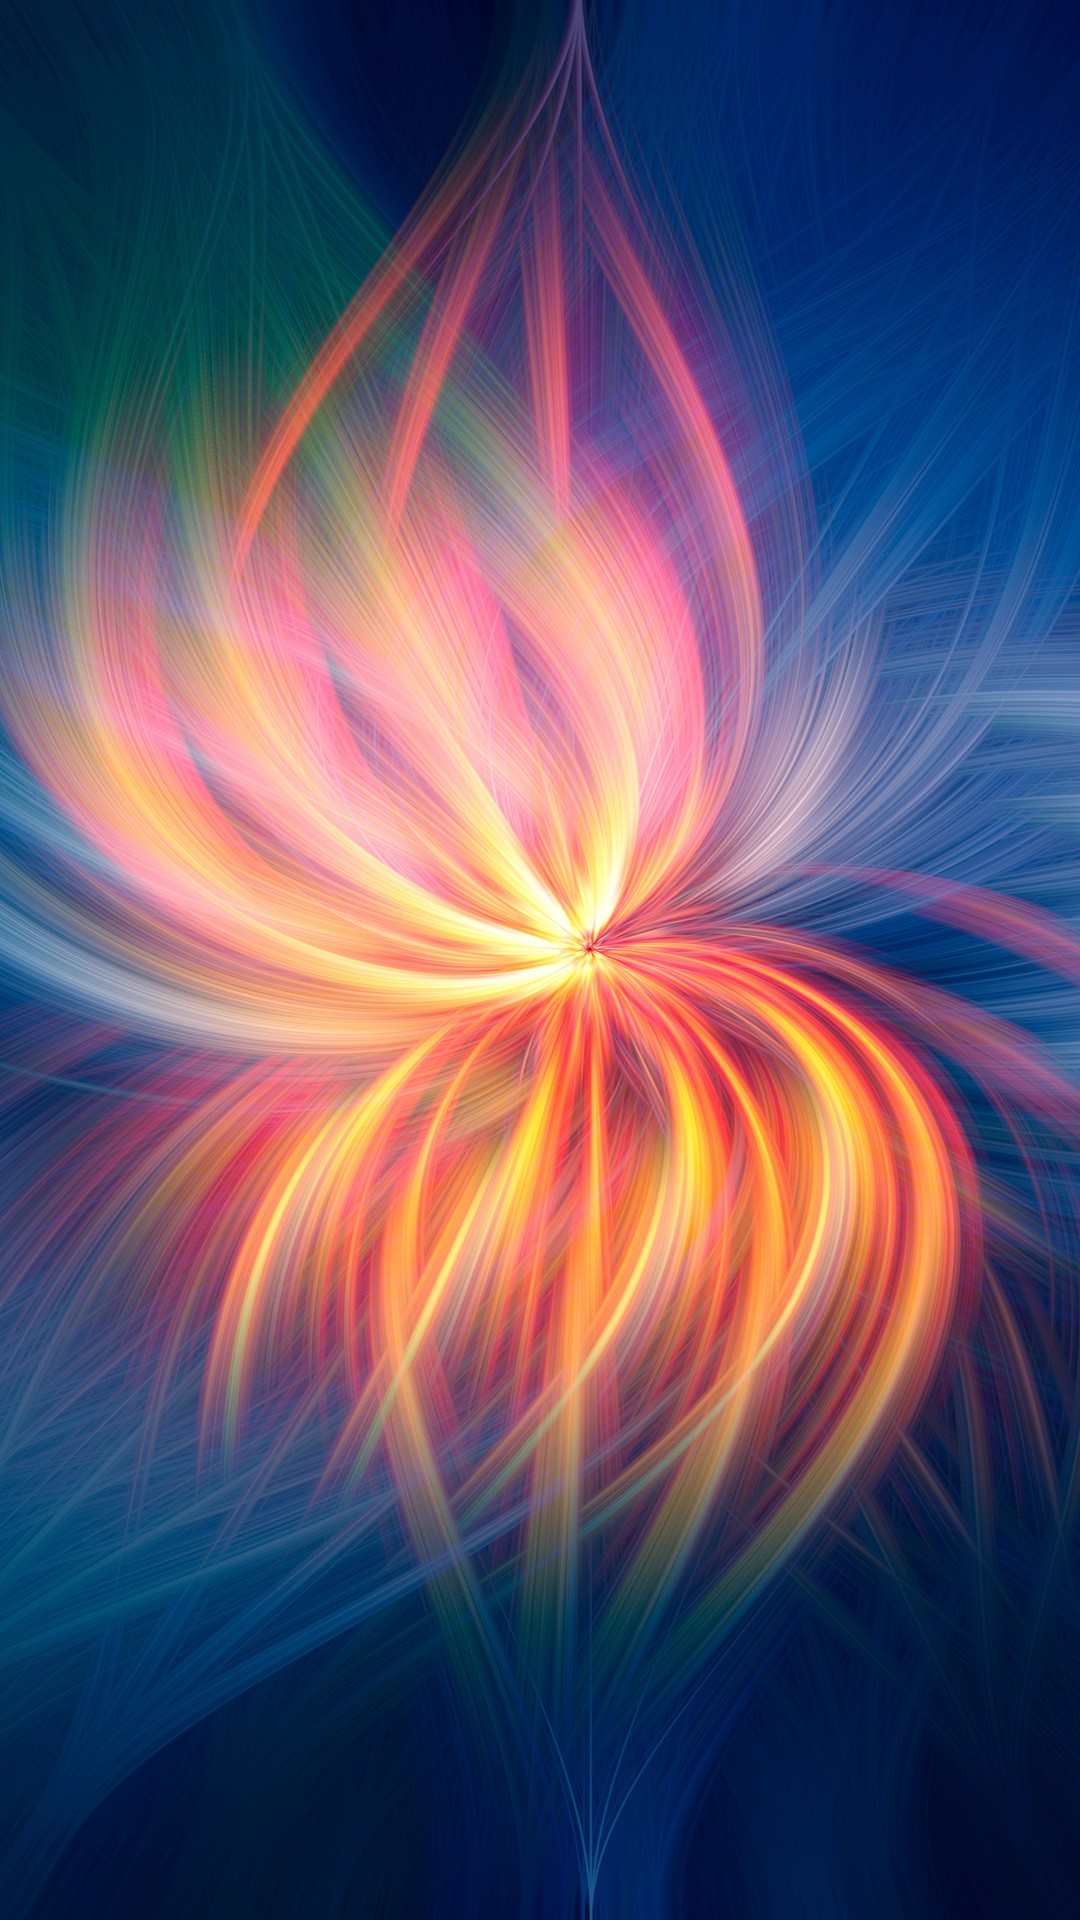 Fireflower Abstract L7 Wallpaper